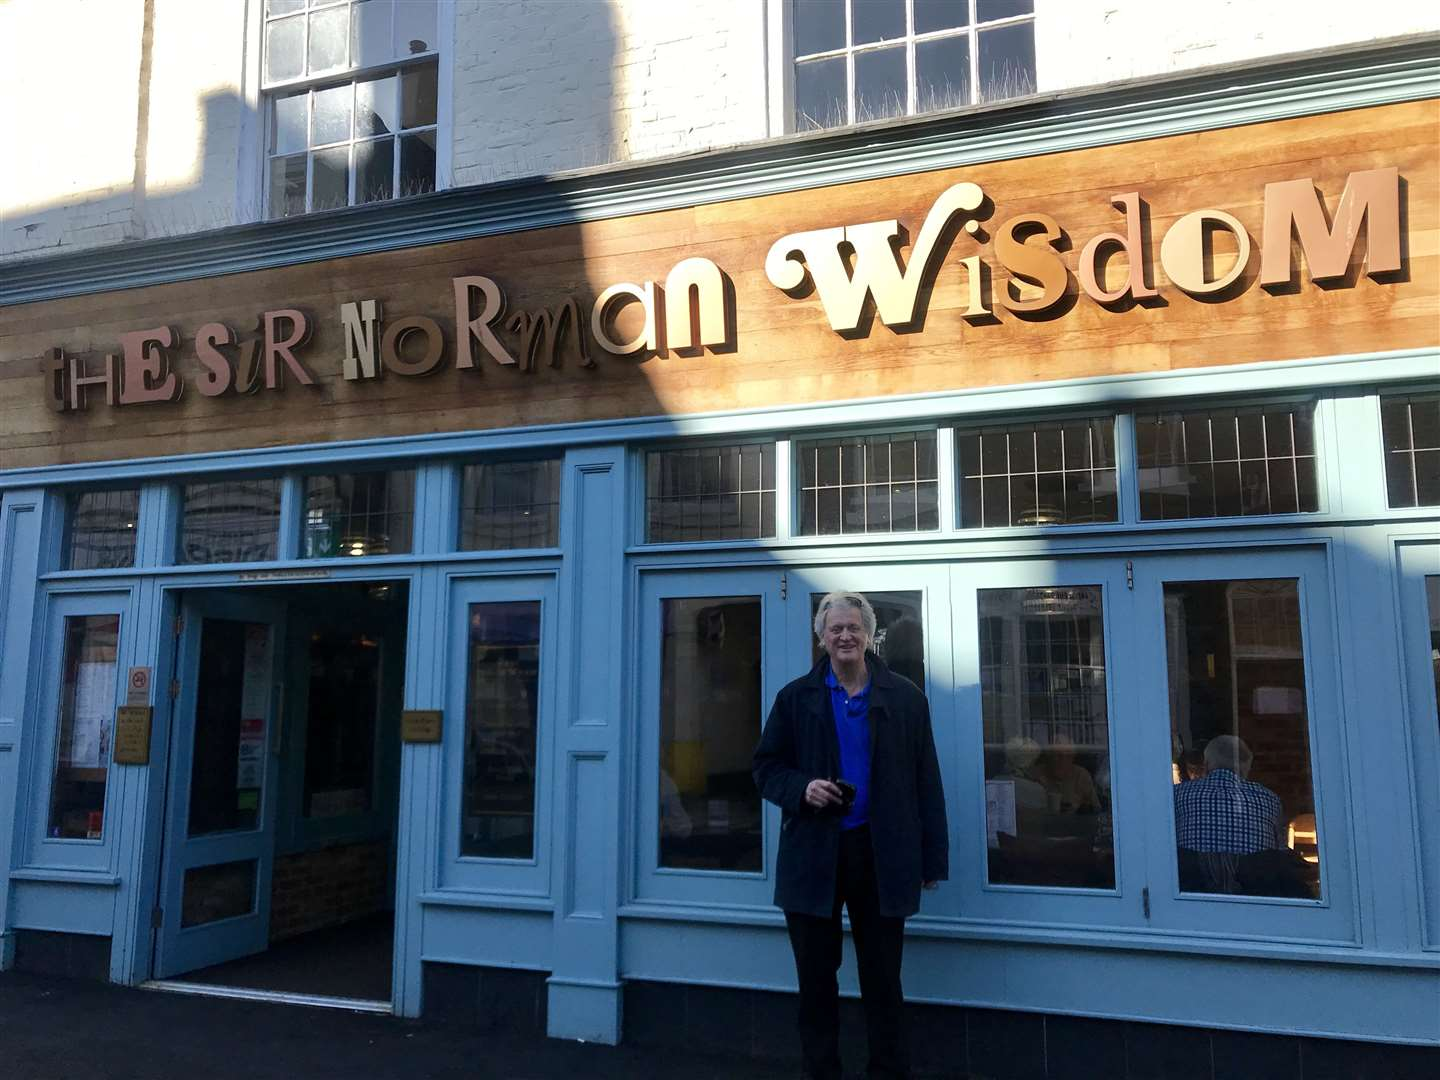 JD Wetherspoon founder Tim Martin outside the Sir Norman Wisdom in Deal